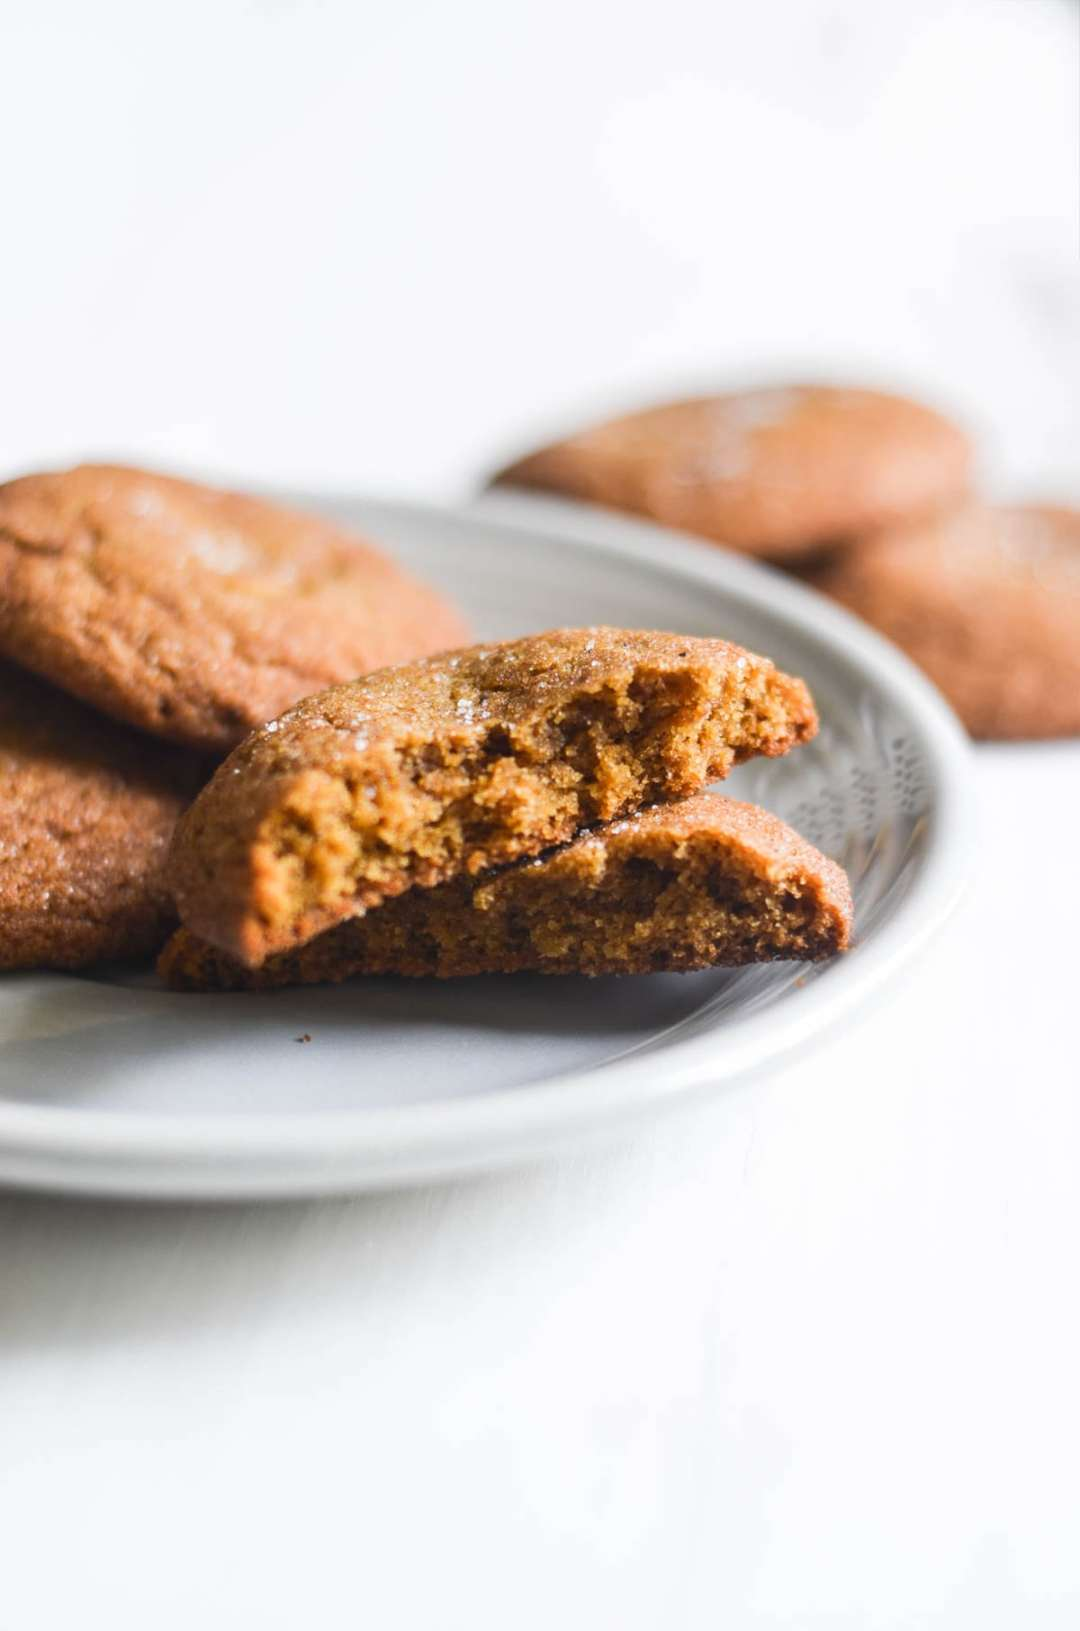 Gingerbread Snickerdoodles on a plate